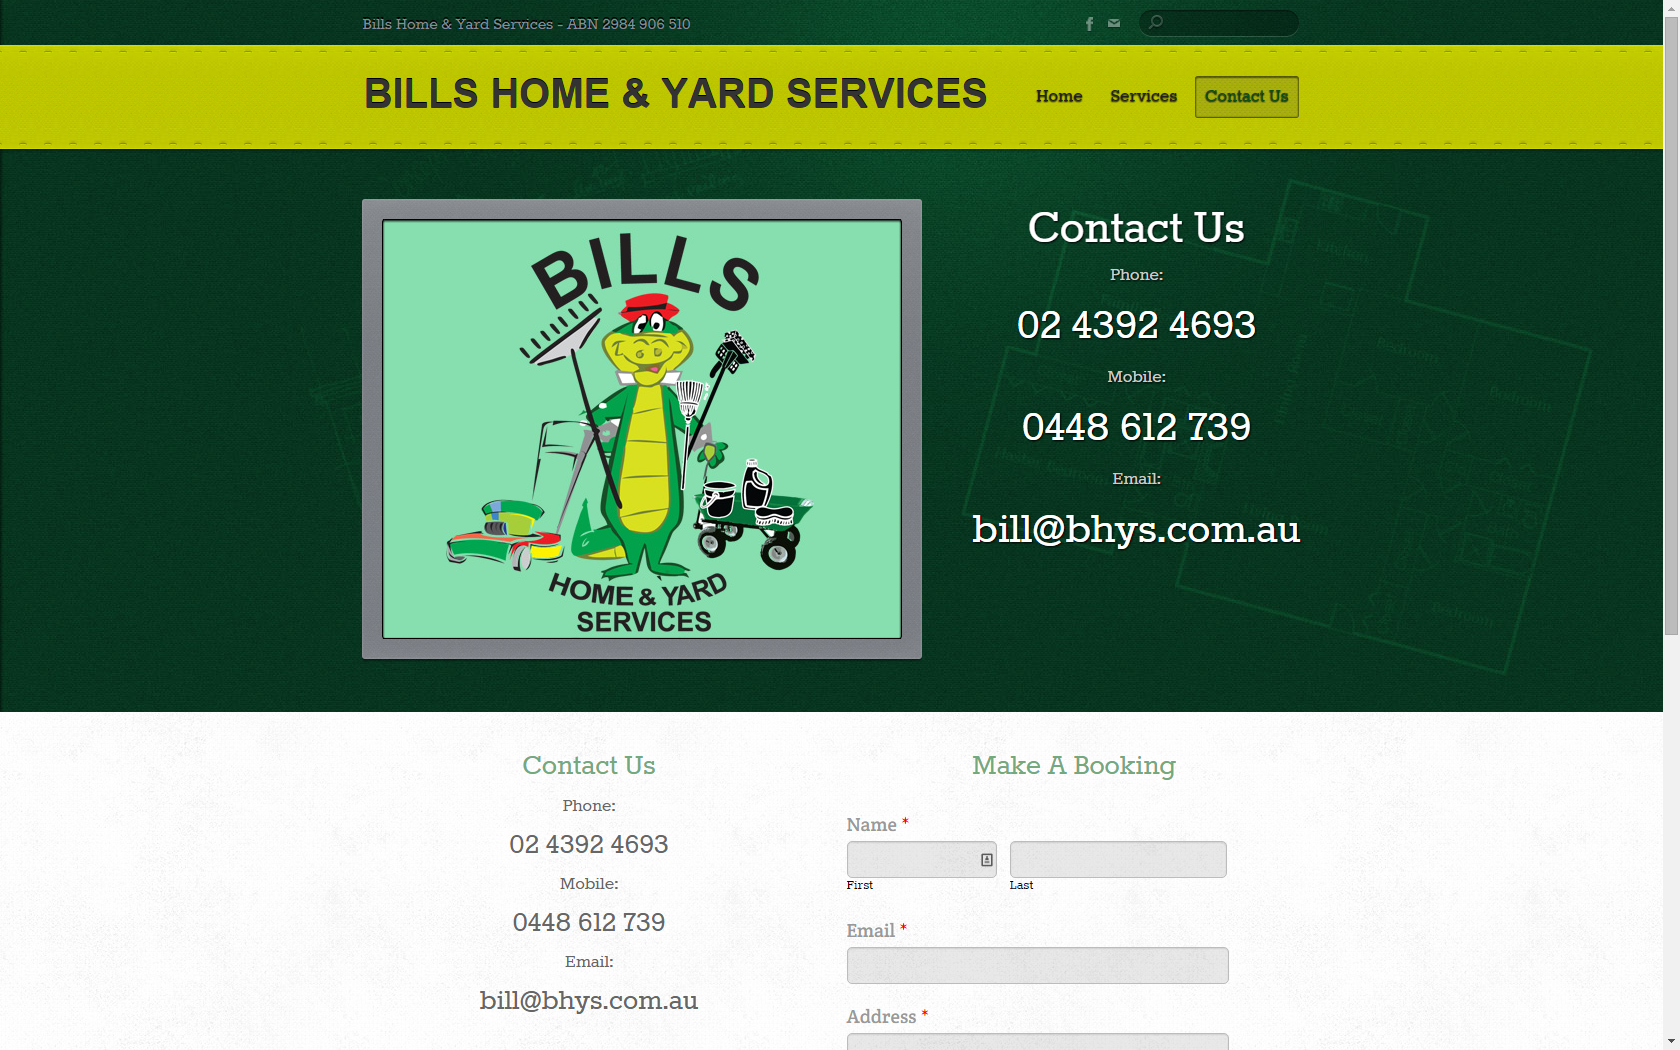 Bills Home and Yard Services